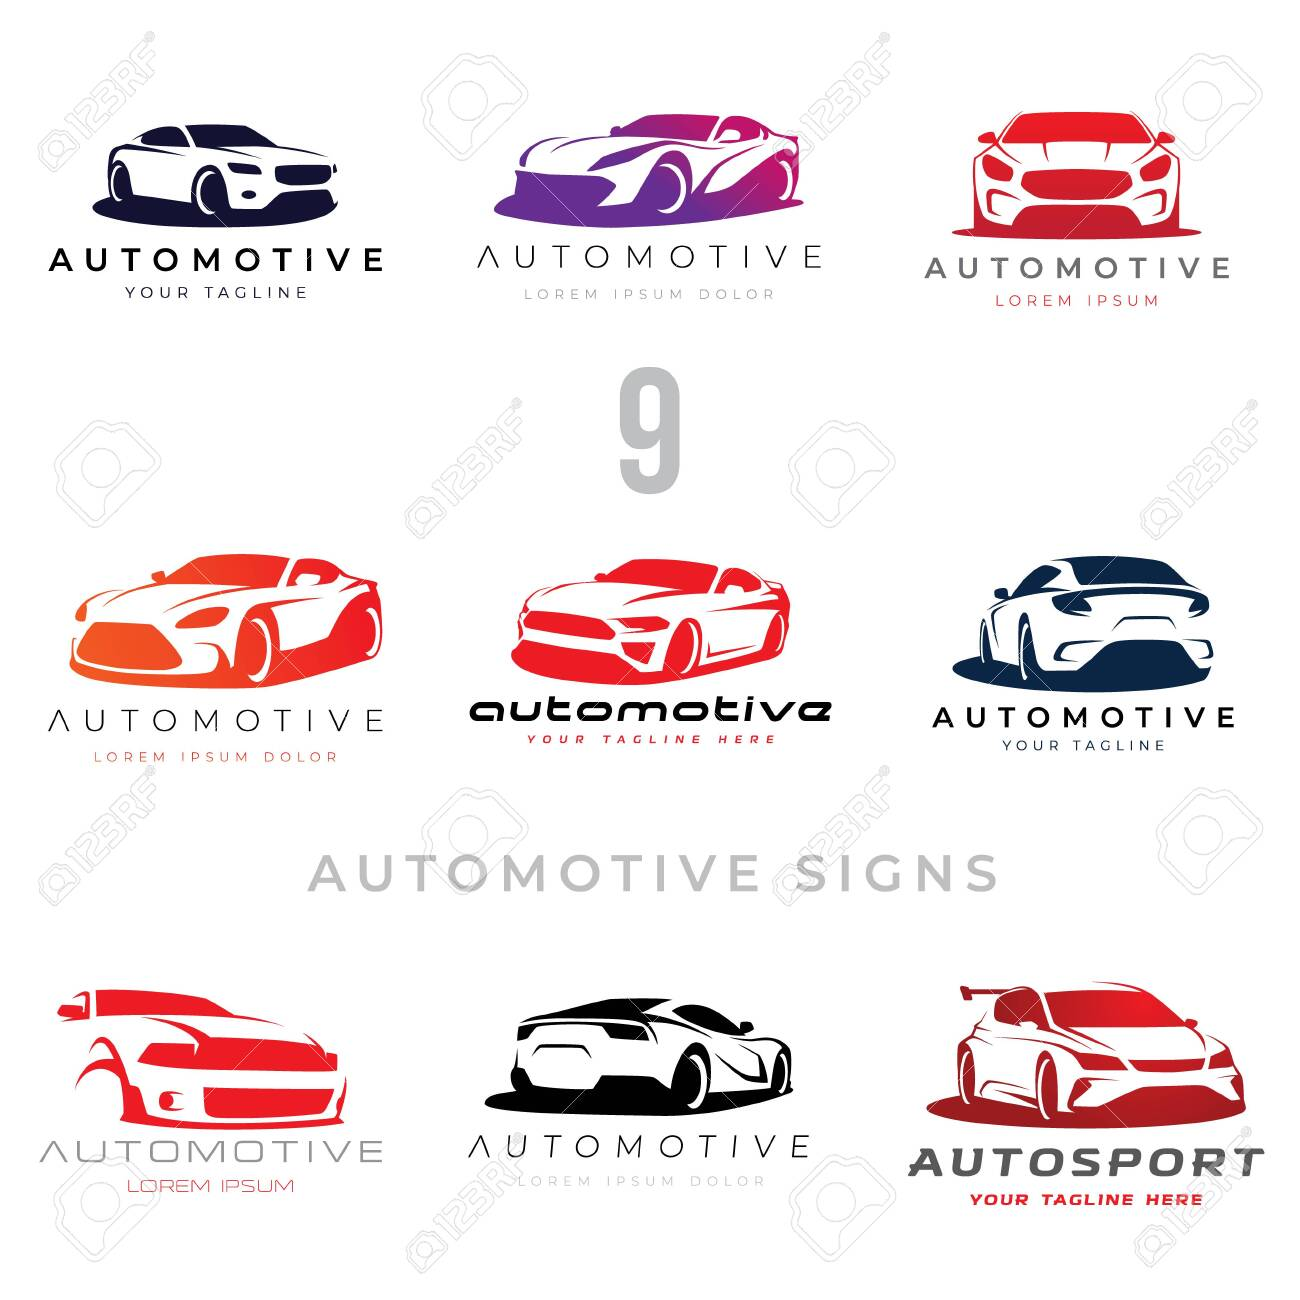 Set of 9 automotive car illustration signs for your projects - 144873449